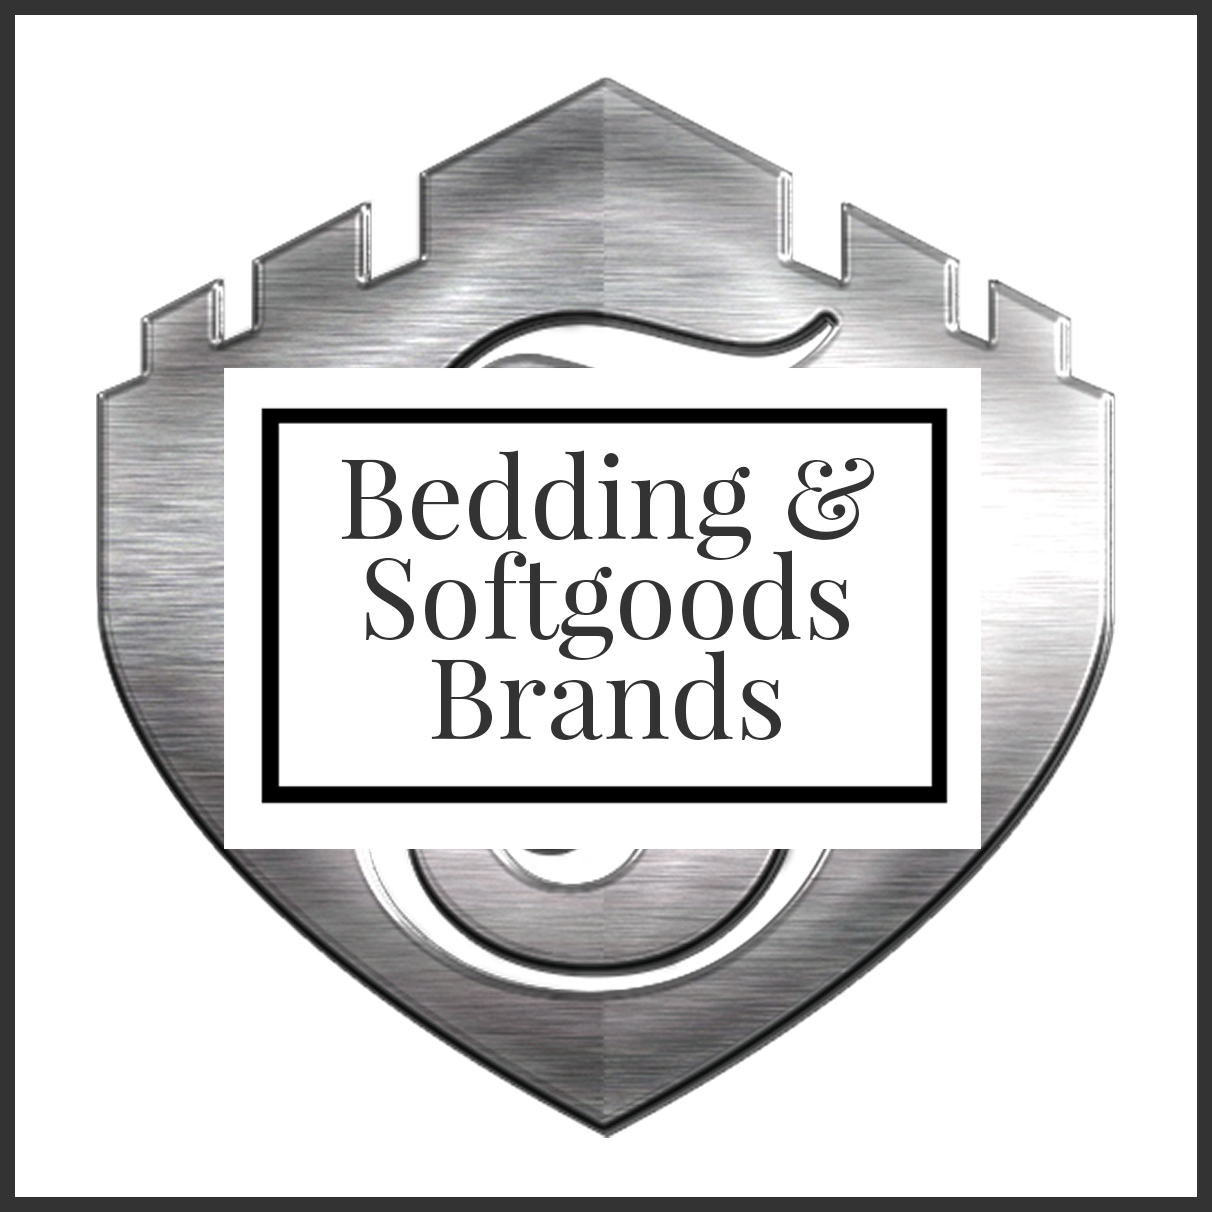 Bedding/Softgoods Brand Listings